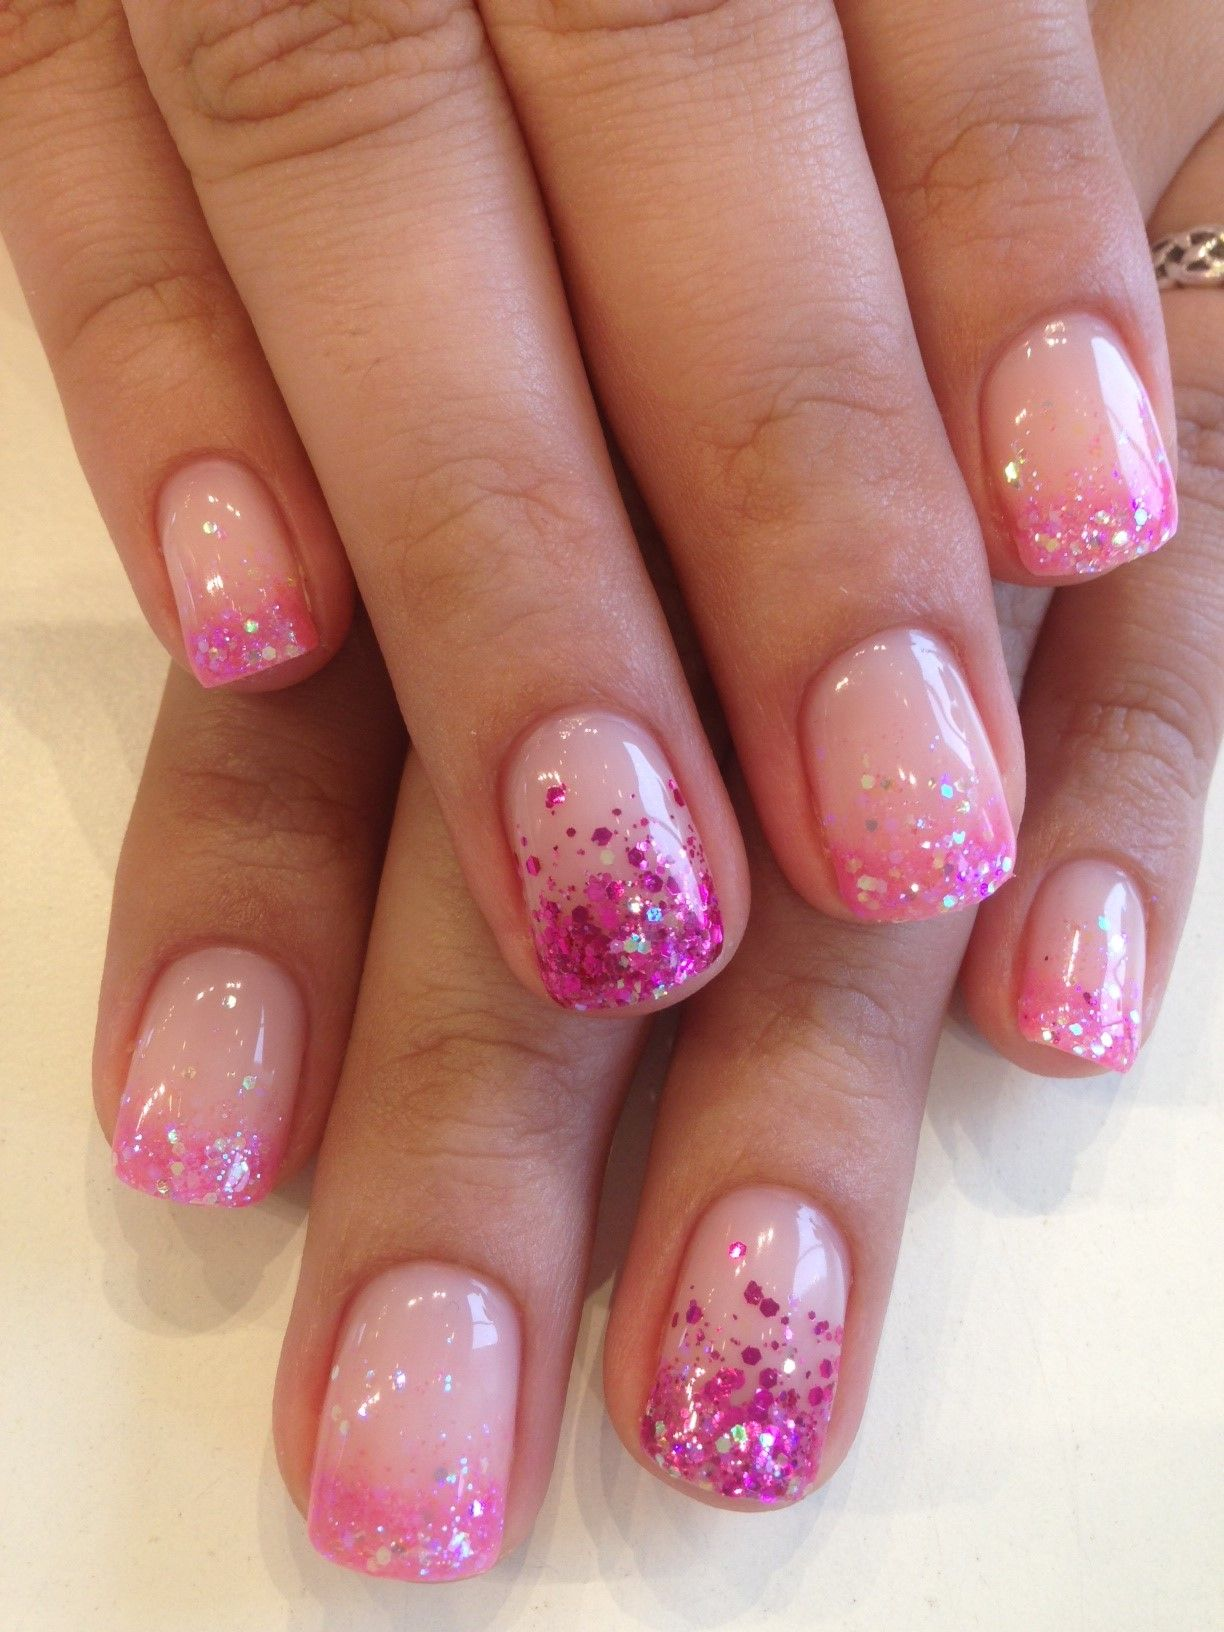 Pink glitter French tips | Nails | Pinterest | Pink ...